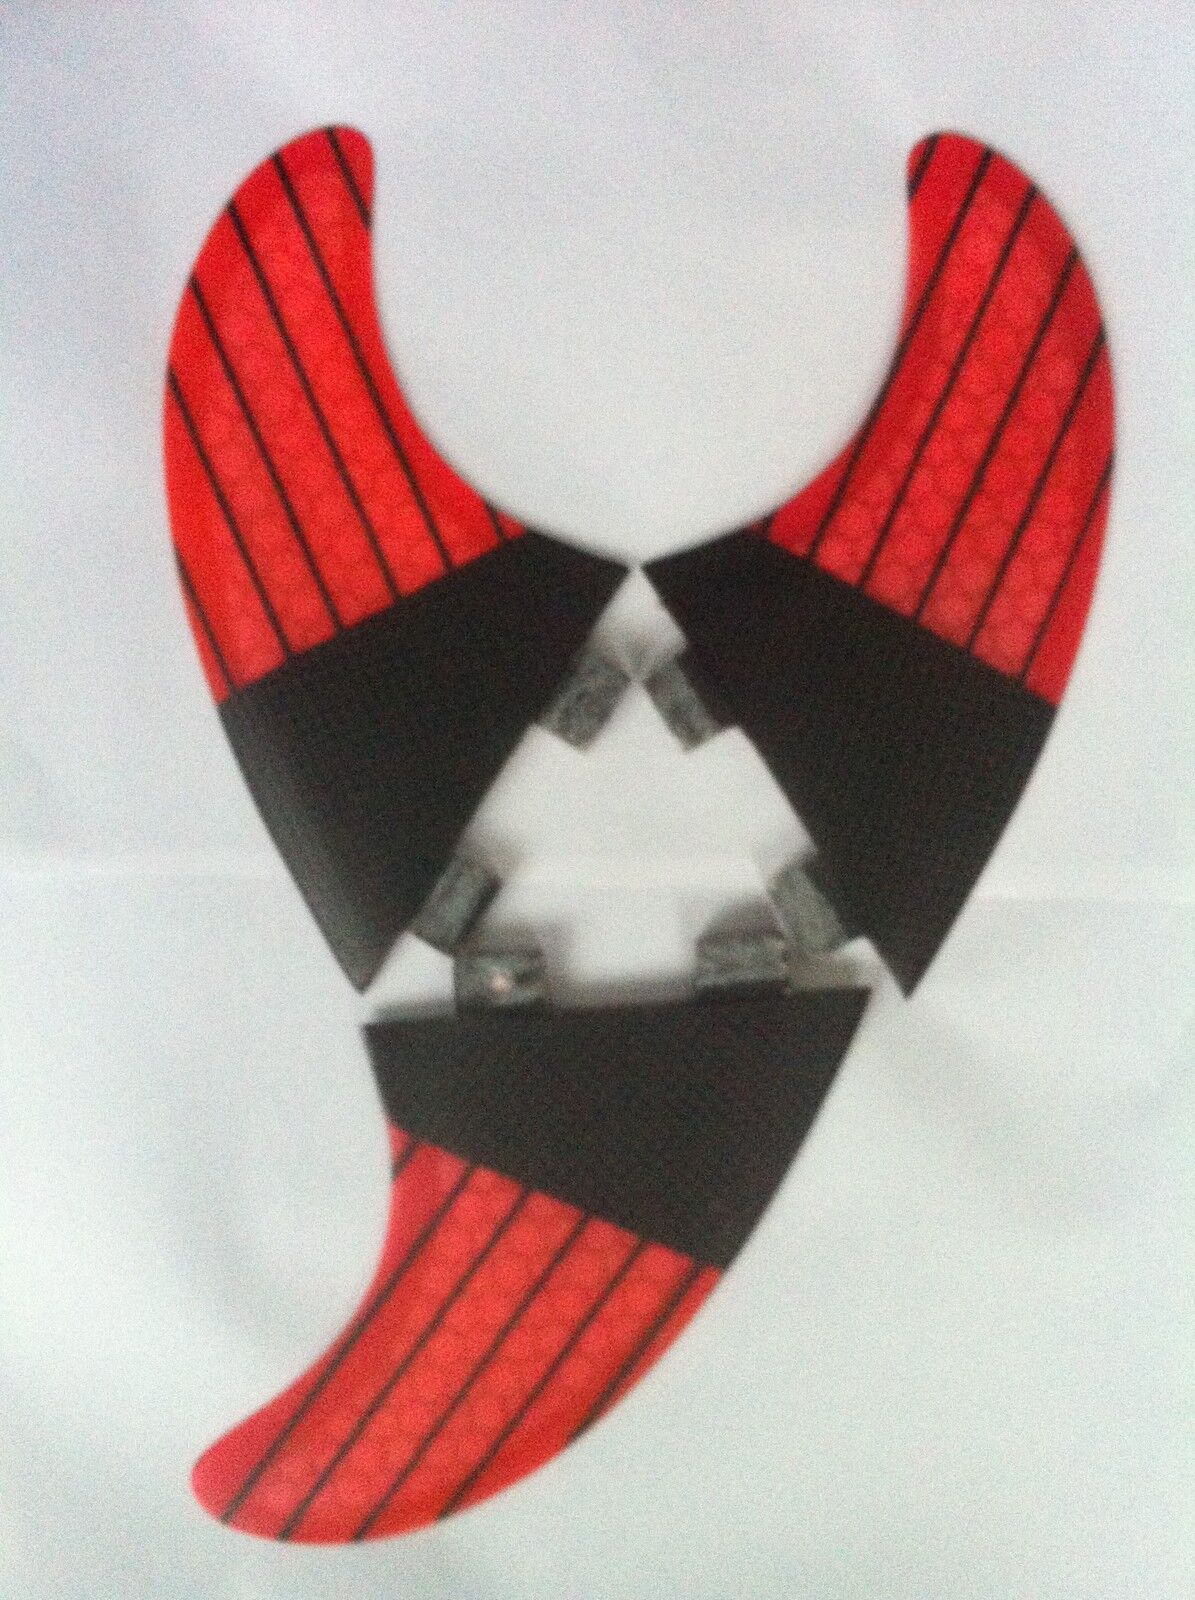 SURFBOARD FINS Carbon Honeycomb FCS Fit Surf Fin,M5 Thruster Set Of3 Hexcore Red